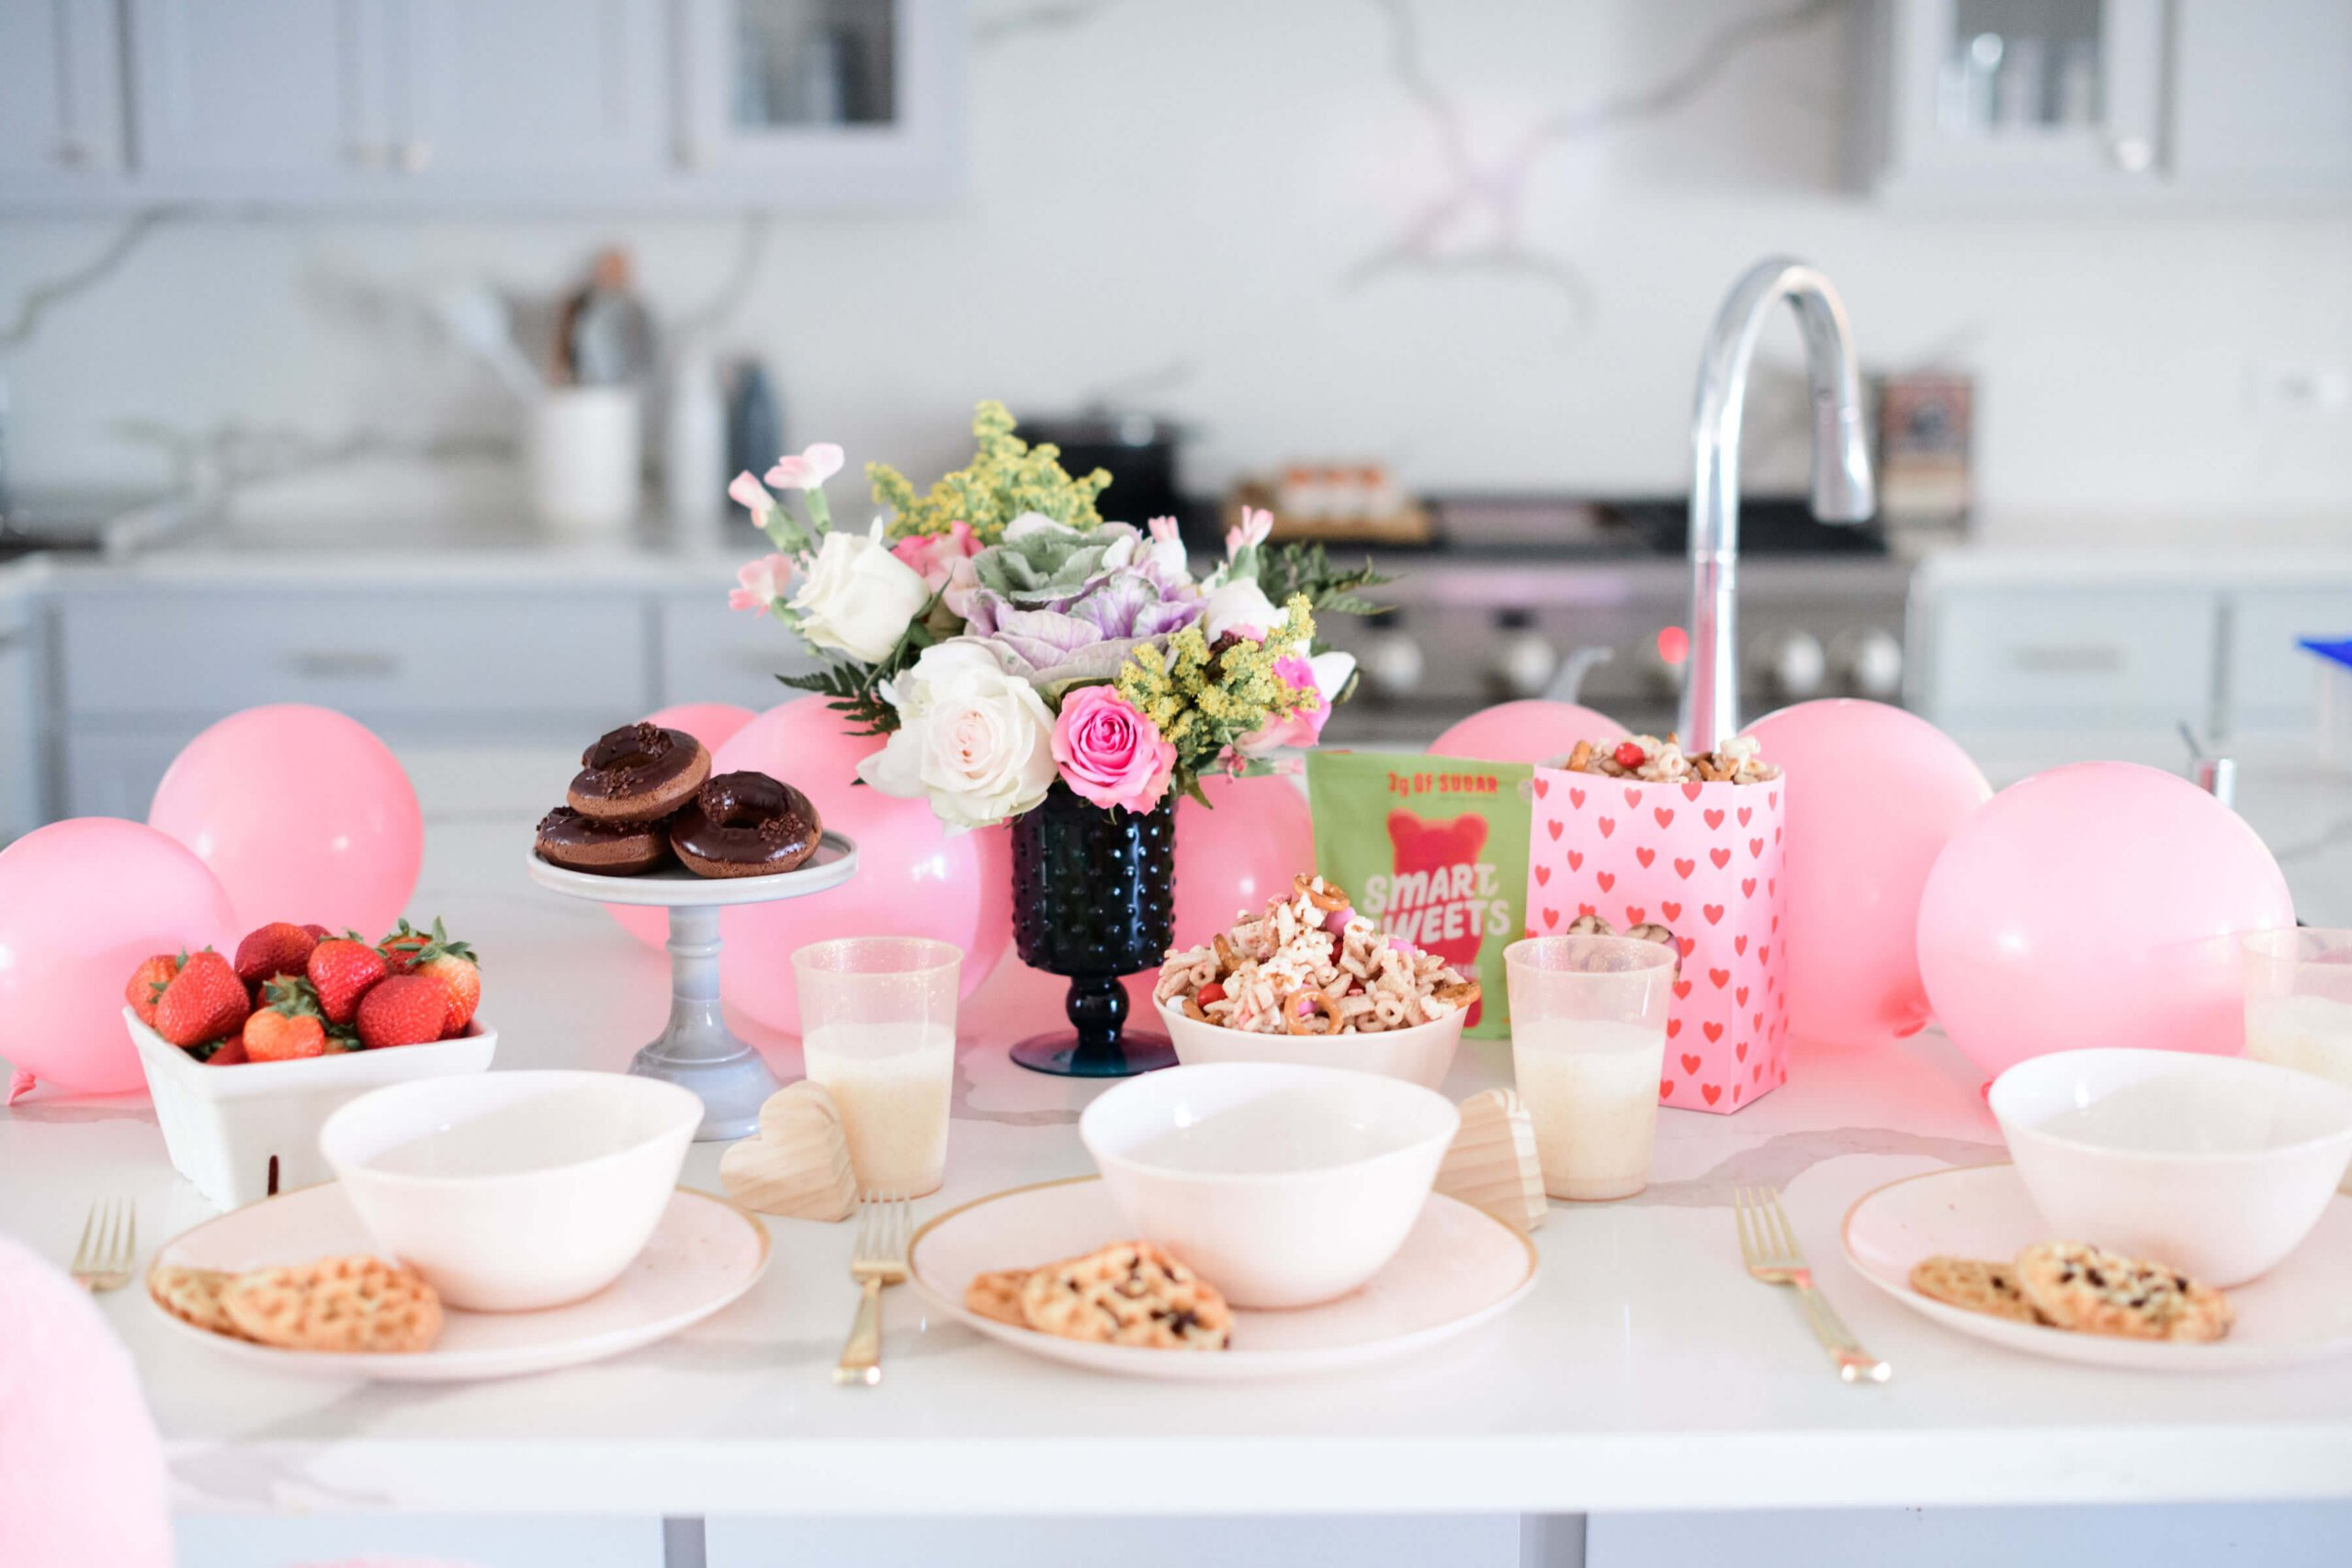 a tablescape of valentine's decorations, flowers and food